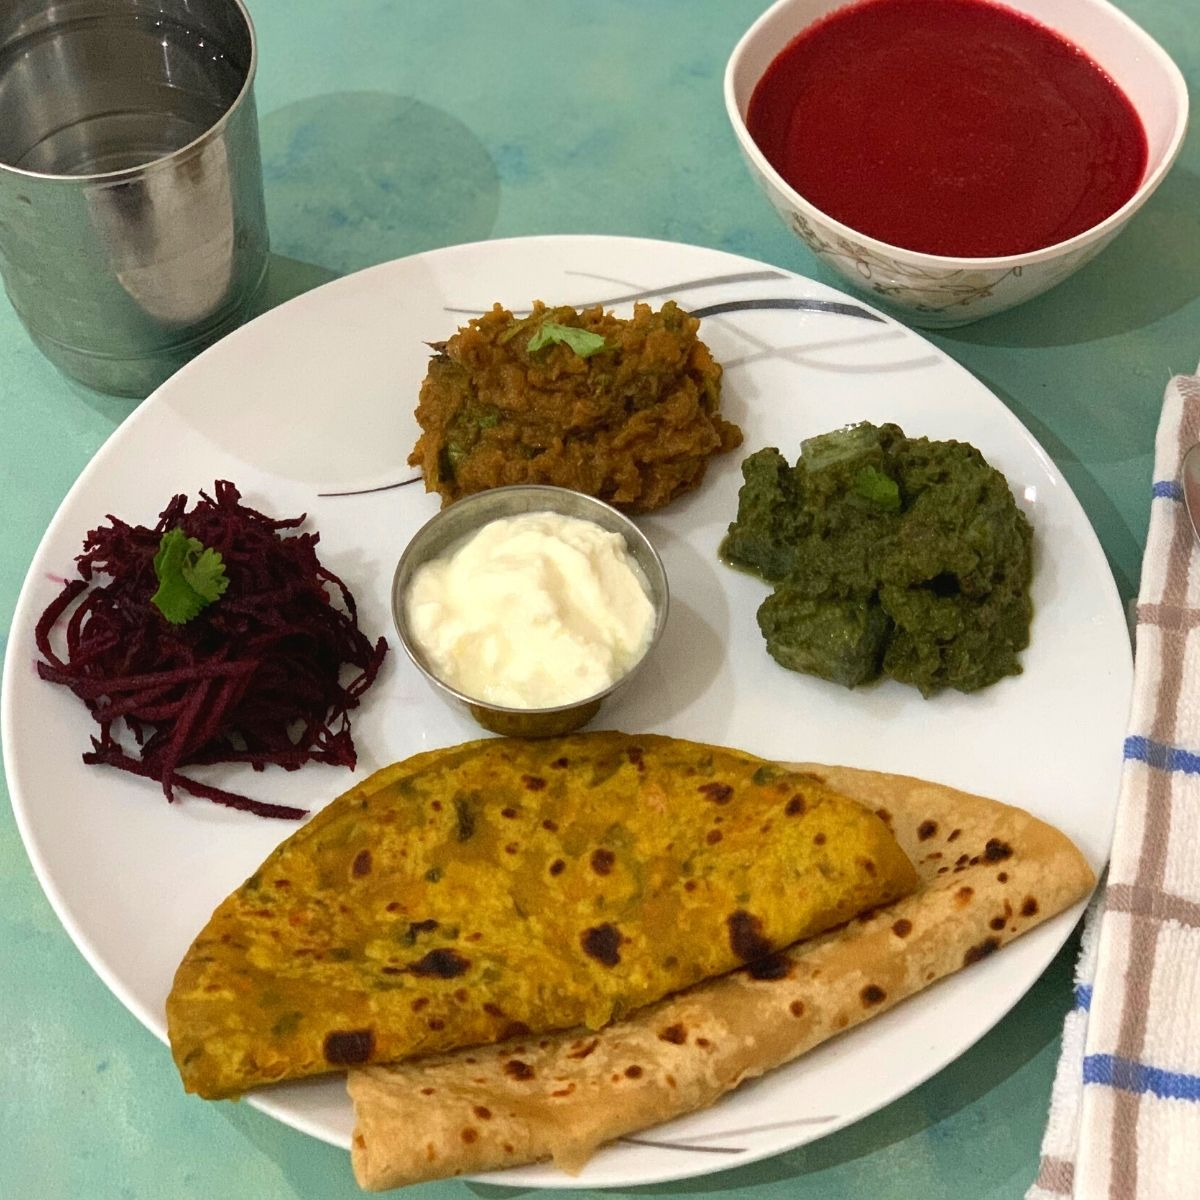 Winter Special Vegetarian Thali has Clockwise from 6'o clock, 2 Parathas (carrot & Plain), Beetroot Salad, Turnip Bharta, Kale, tofu and corn curry and yogurt in between. Beetroot soup is seen on the side along with a glass of water on the other side.